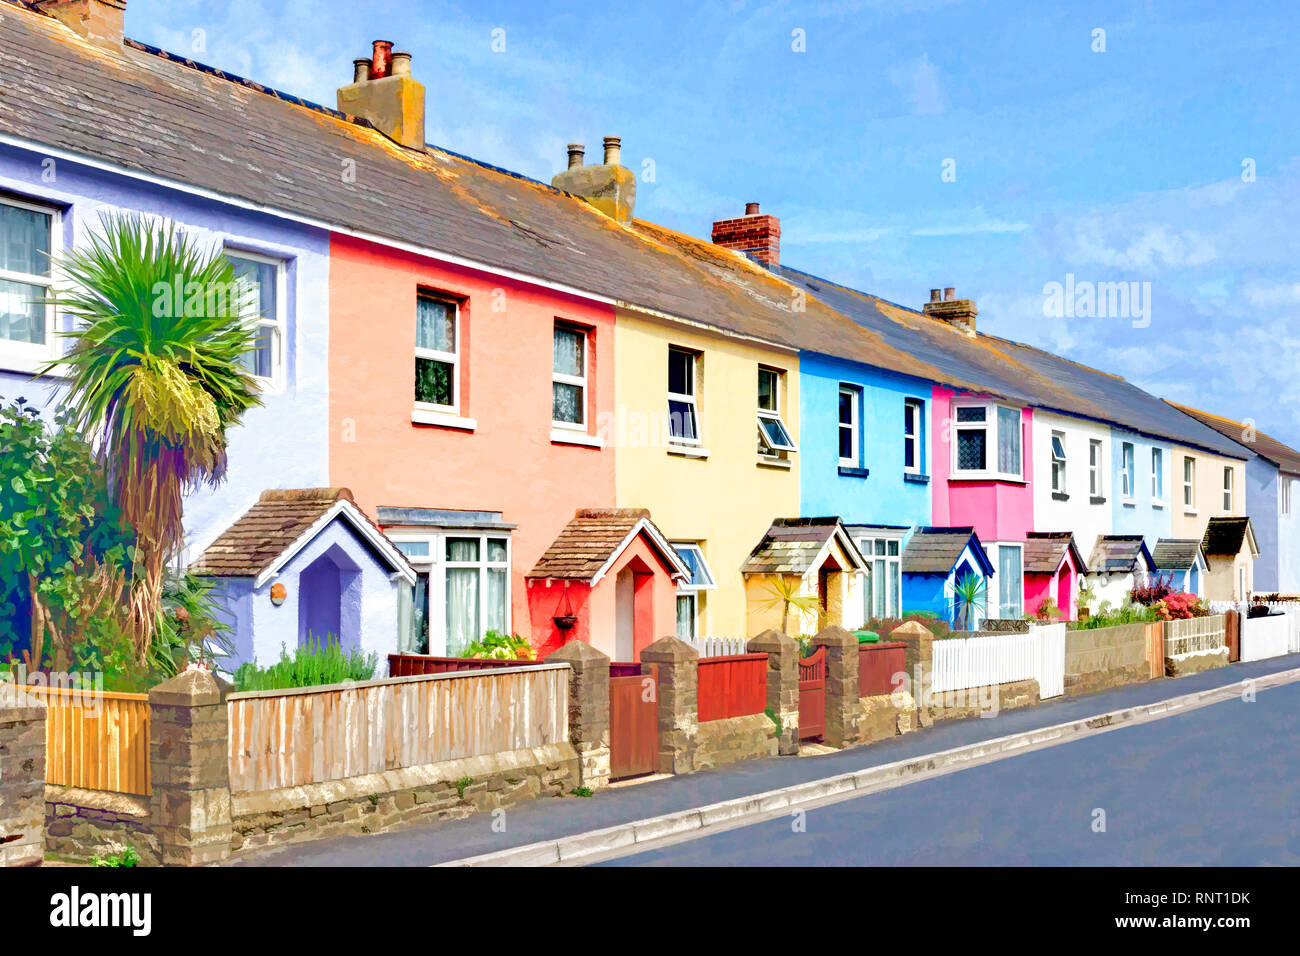 Stylised painterly image of a row of brightly-painted terraced cottages in an English seaside town - Stock Image